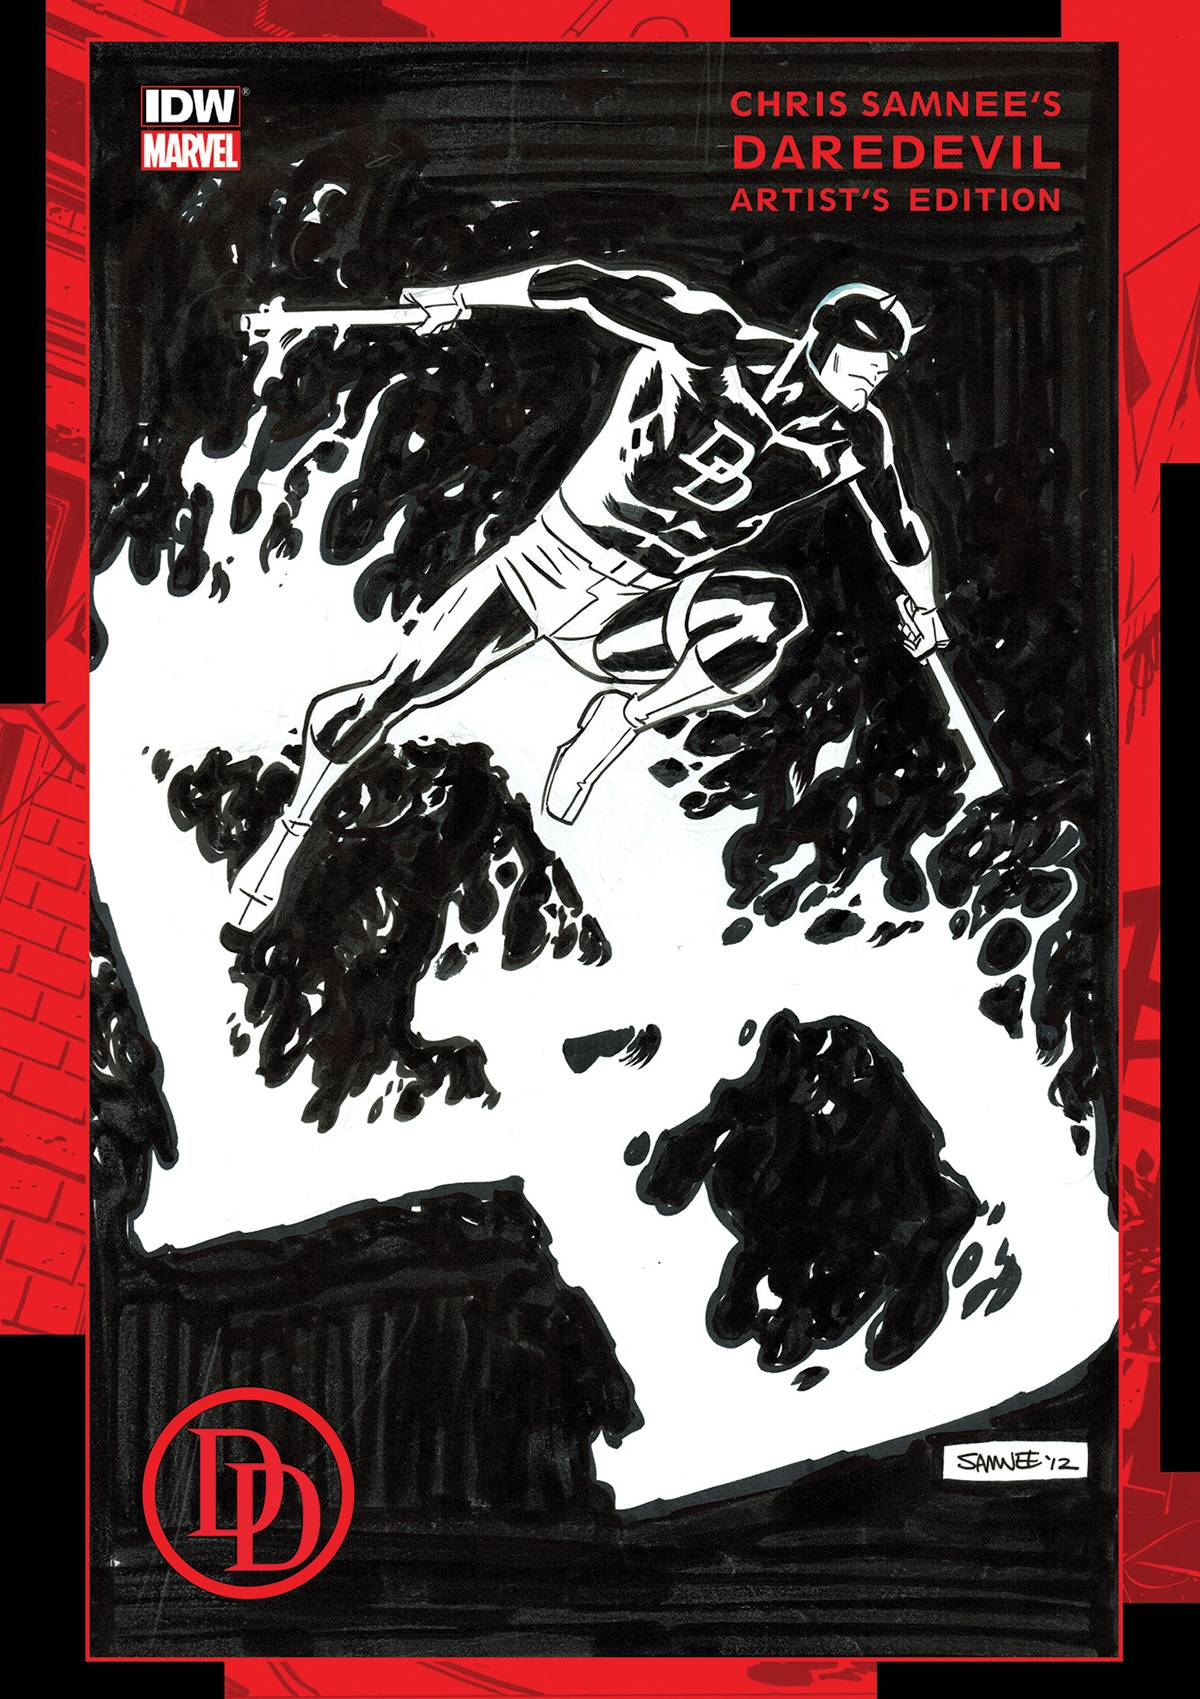 Review | Chris Samnee's Daredevil Artist's Edition